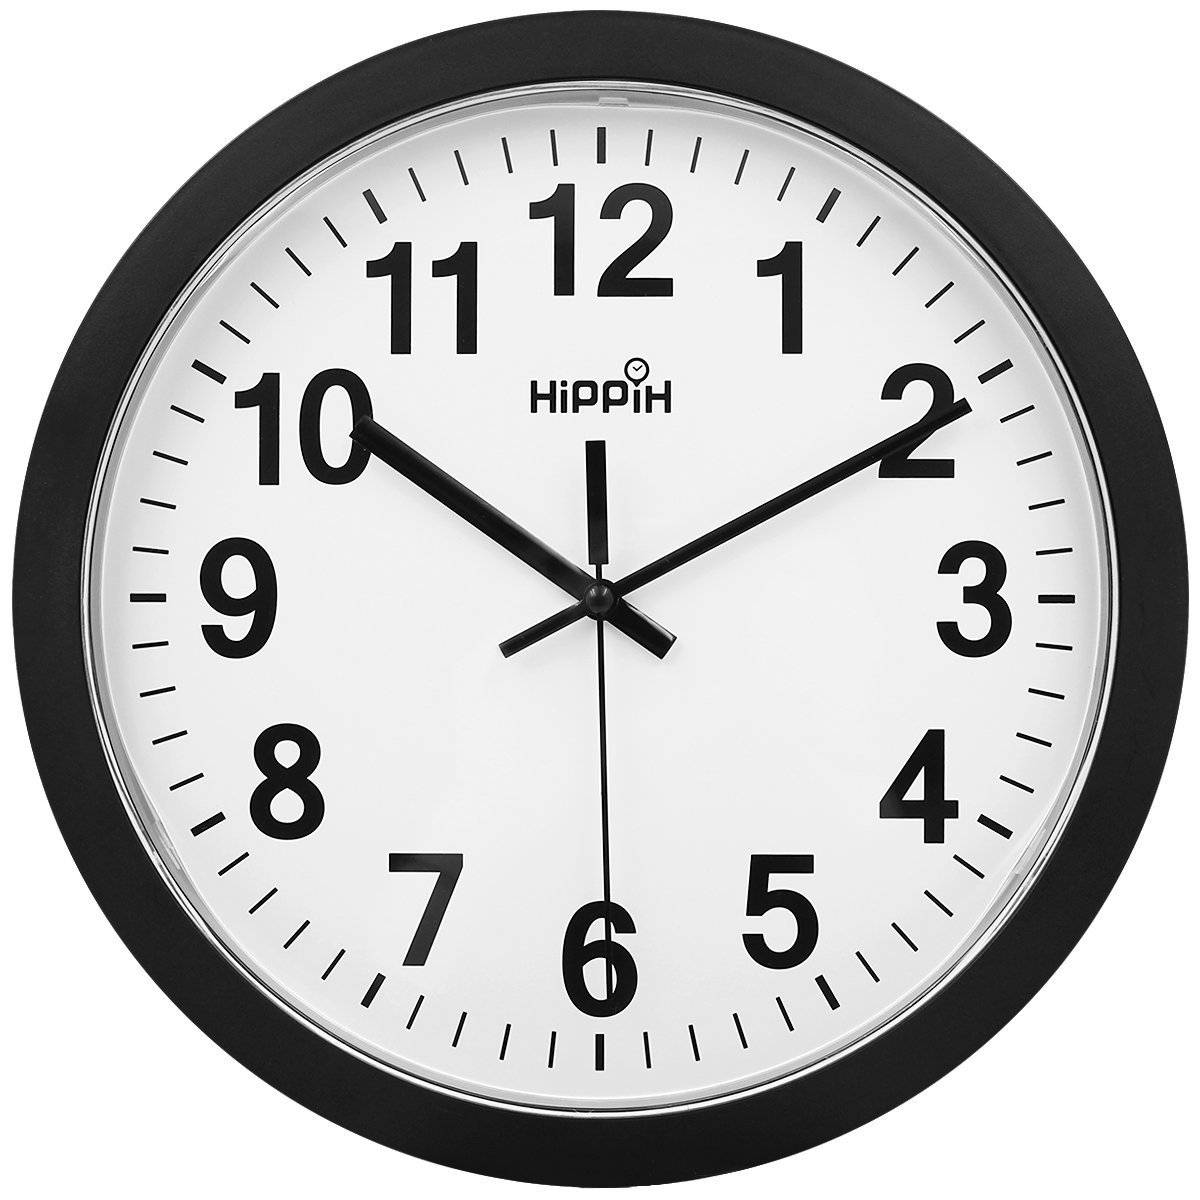 Amazon.com: HIPPIH Large Silent Wall Clock - 12 Inch Non-Ticking ...